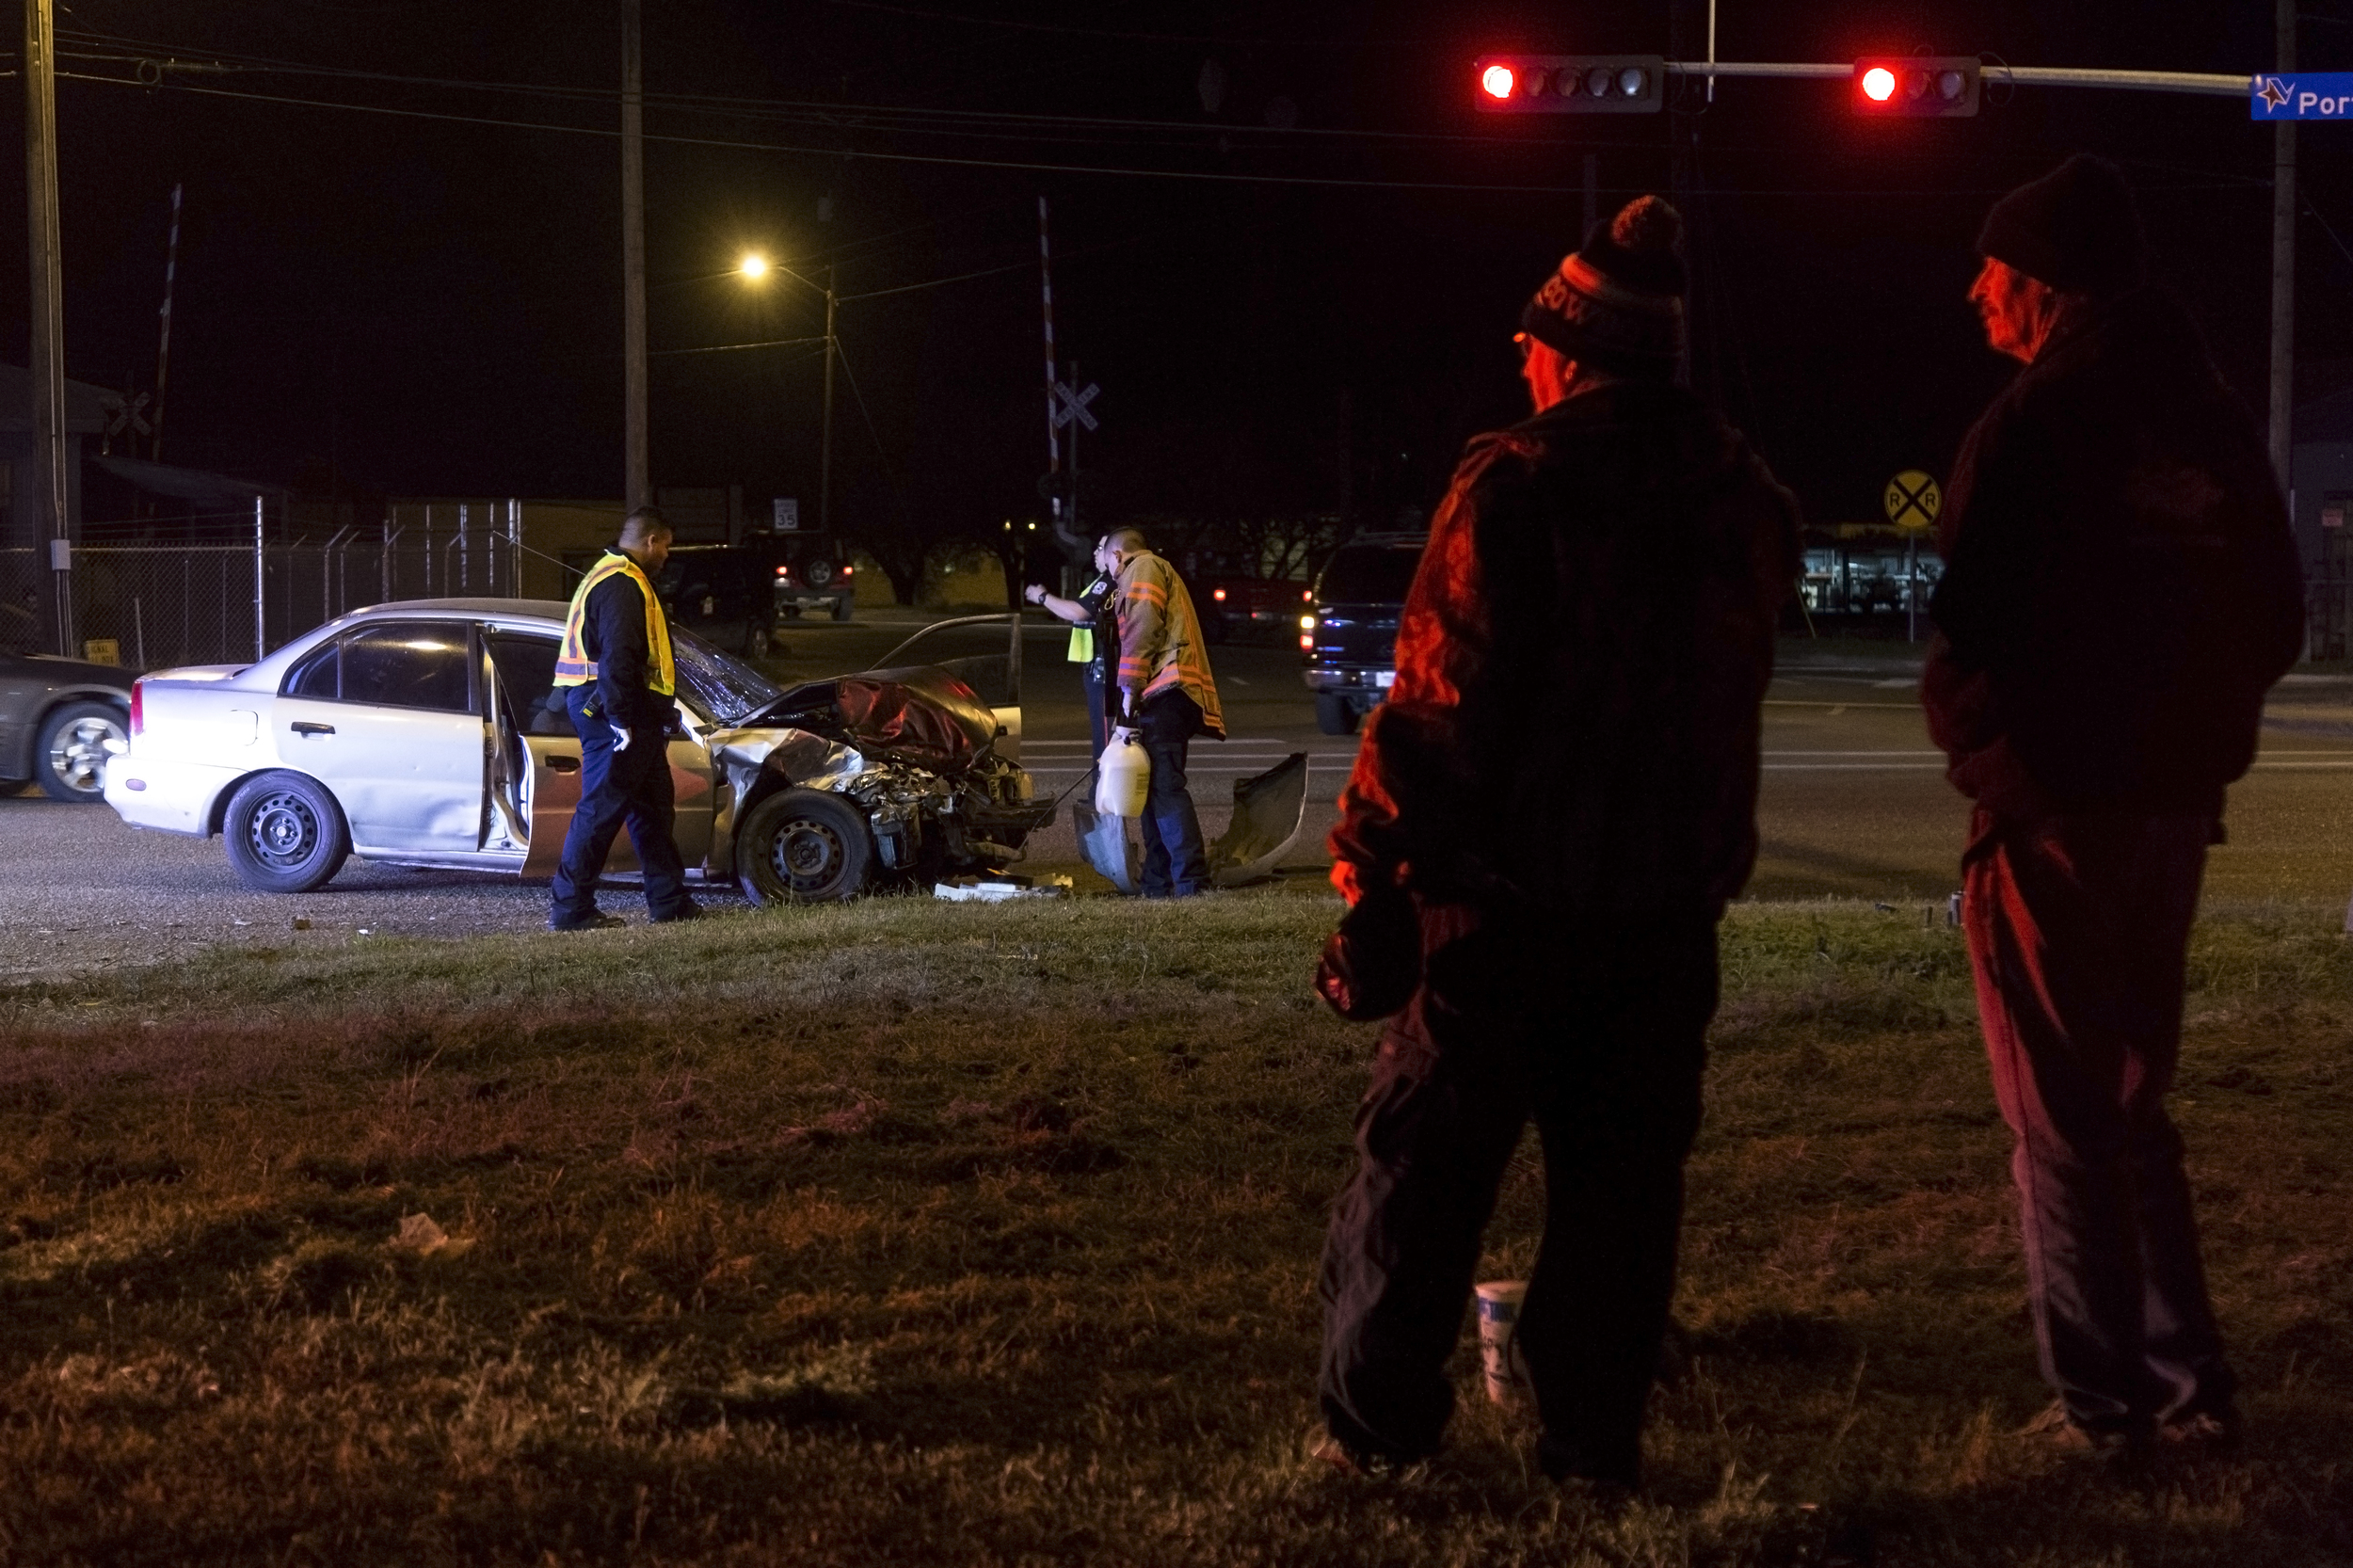 Bystanders watch the clean up the accident at the intersection of Ben Jordan Street and Port Lavaca Drive.